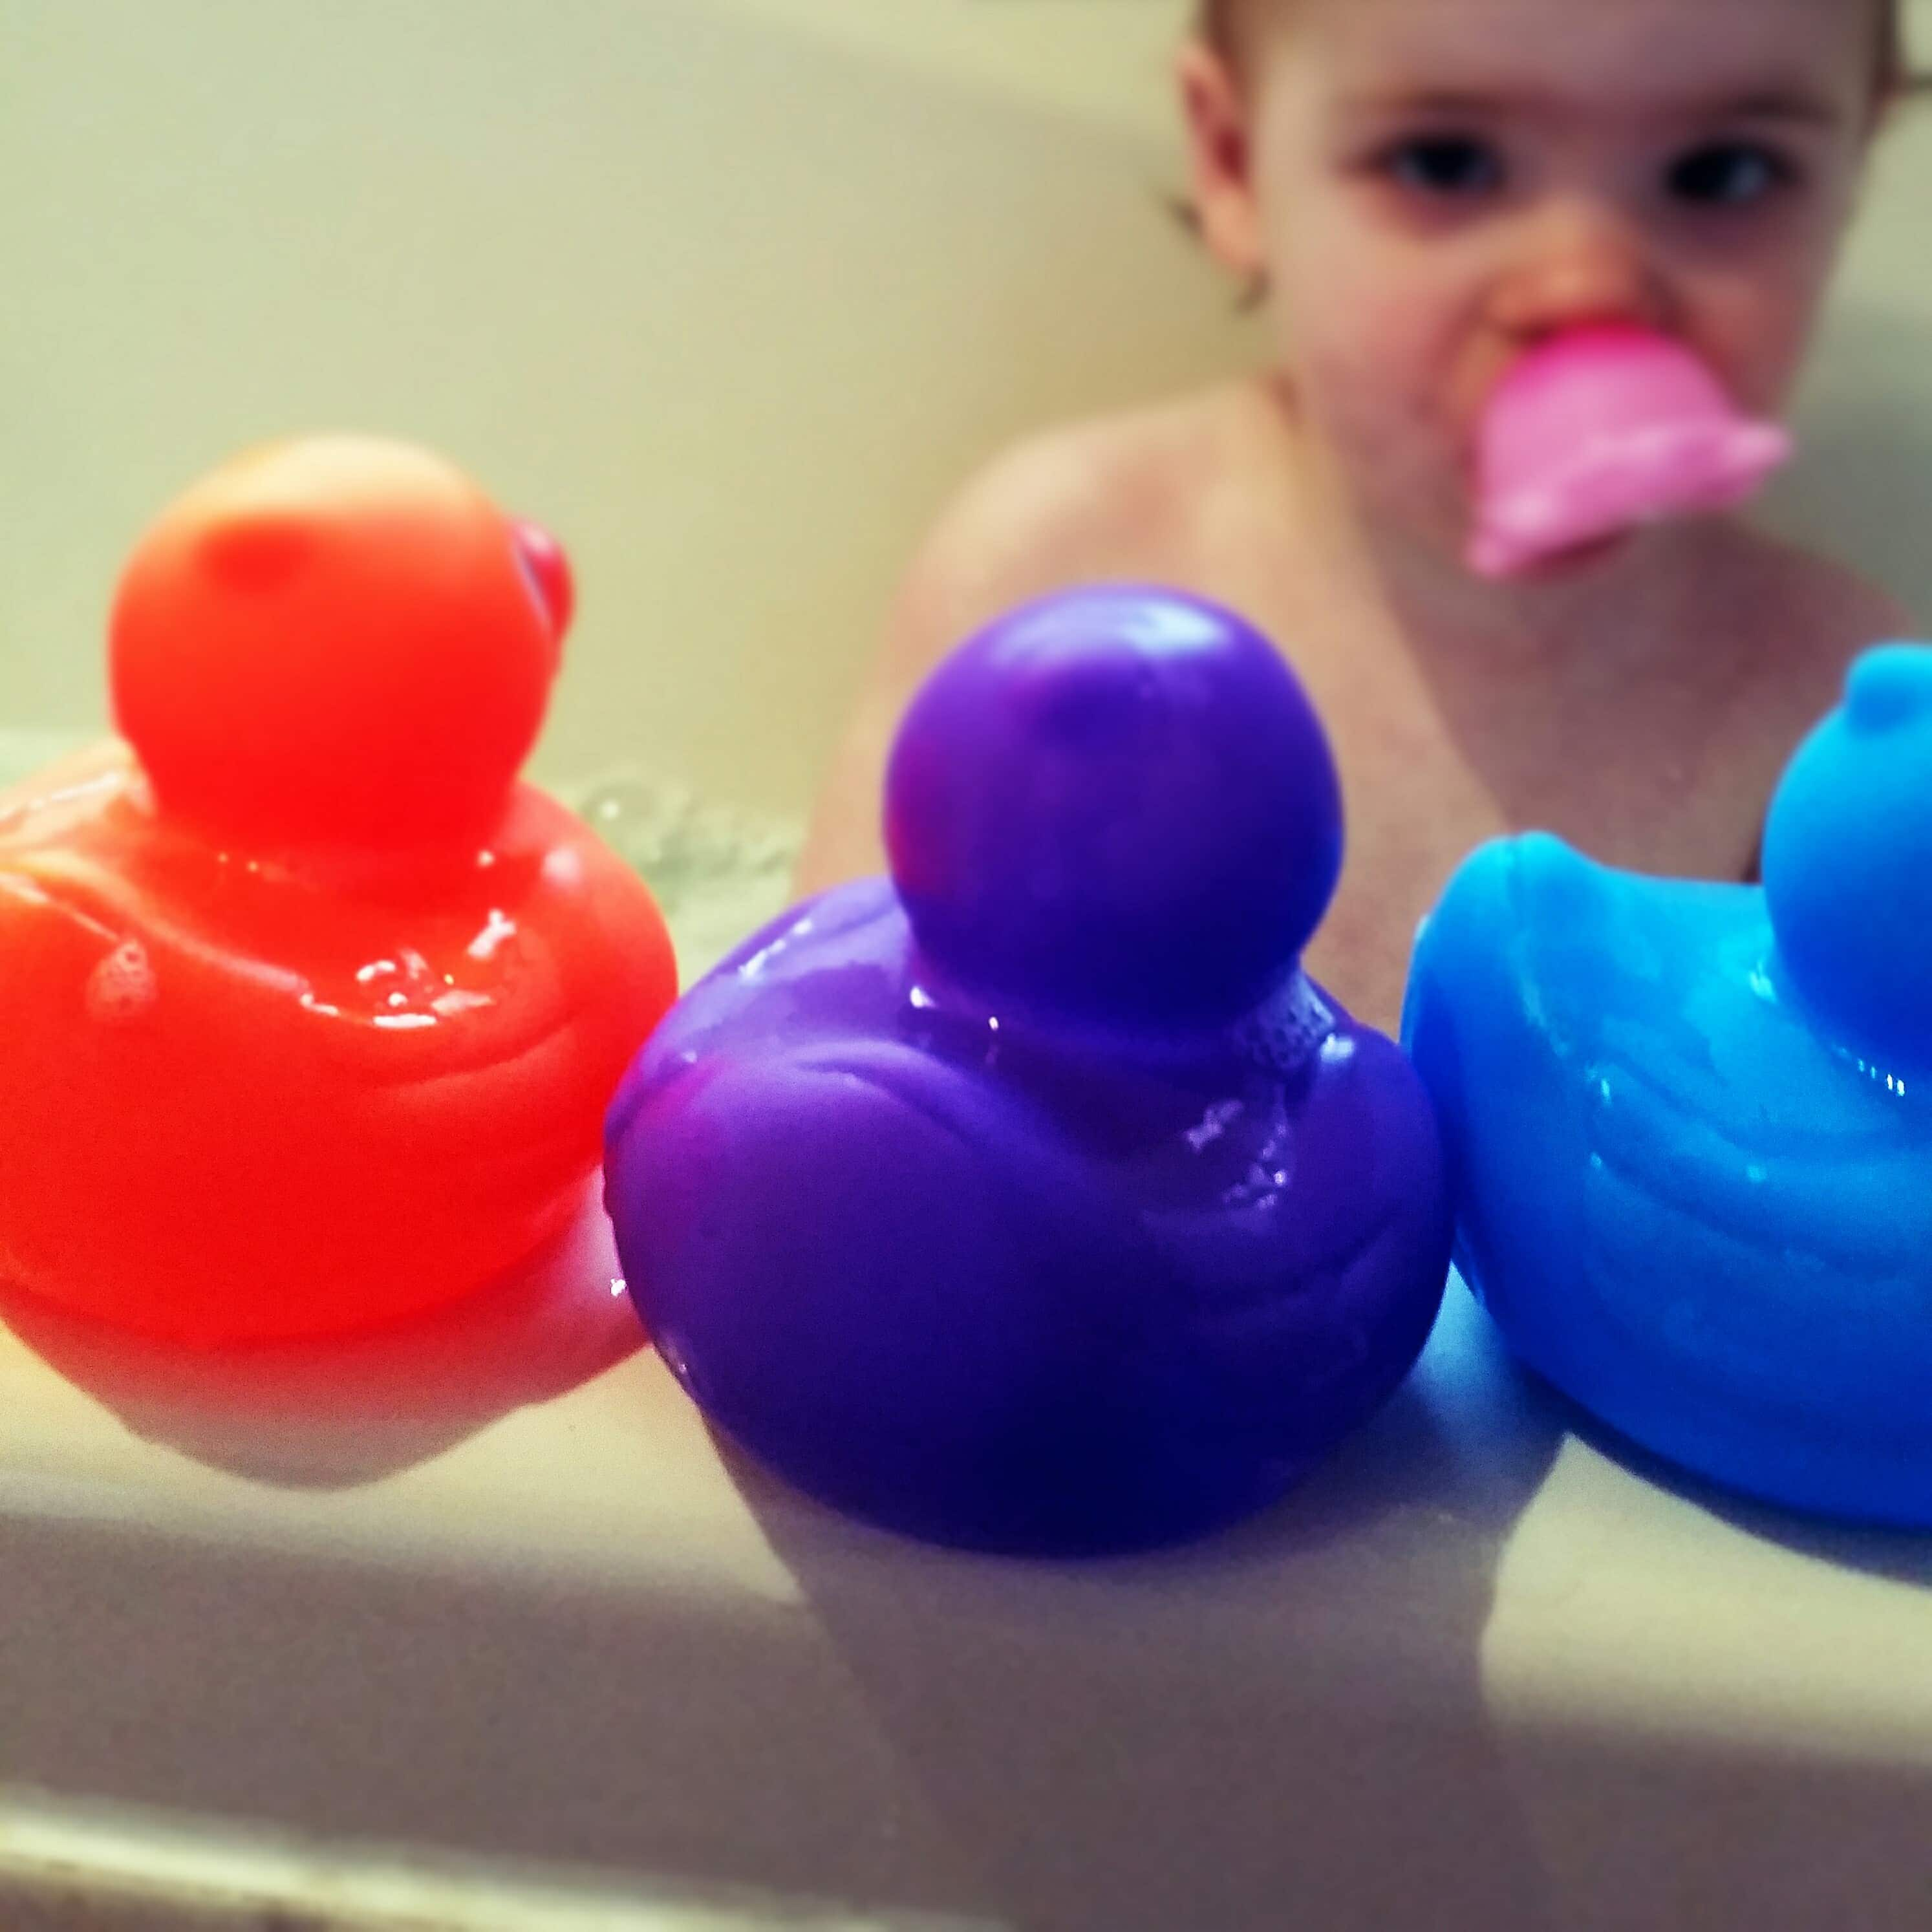 Bath Ducks with baby in the background